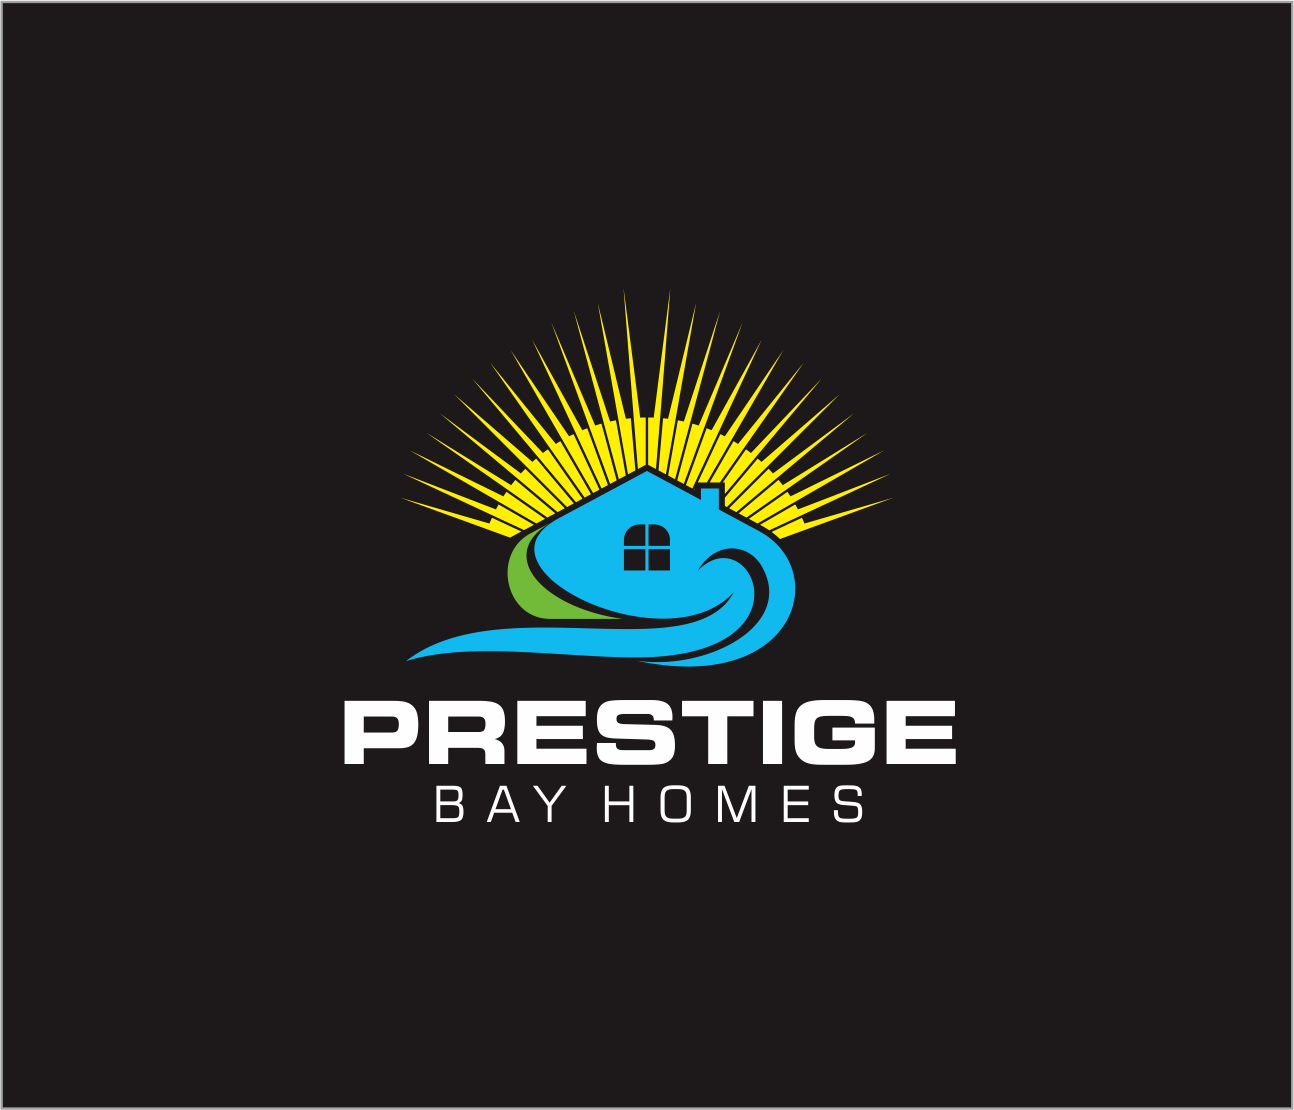 Logo Design by Armada Jamaluddin - Entry No. 155 in the Logo Design Contest Imaginative Logo Design for Prestige Bay Homes.